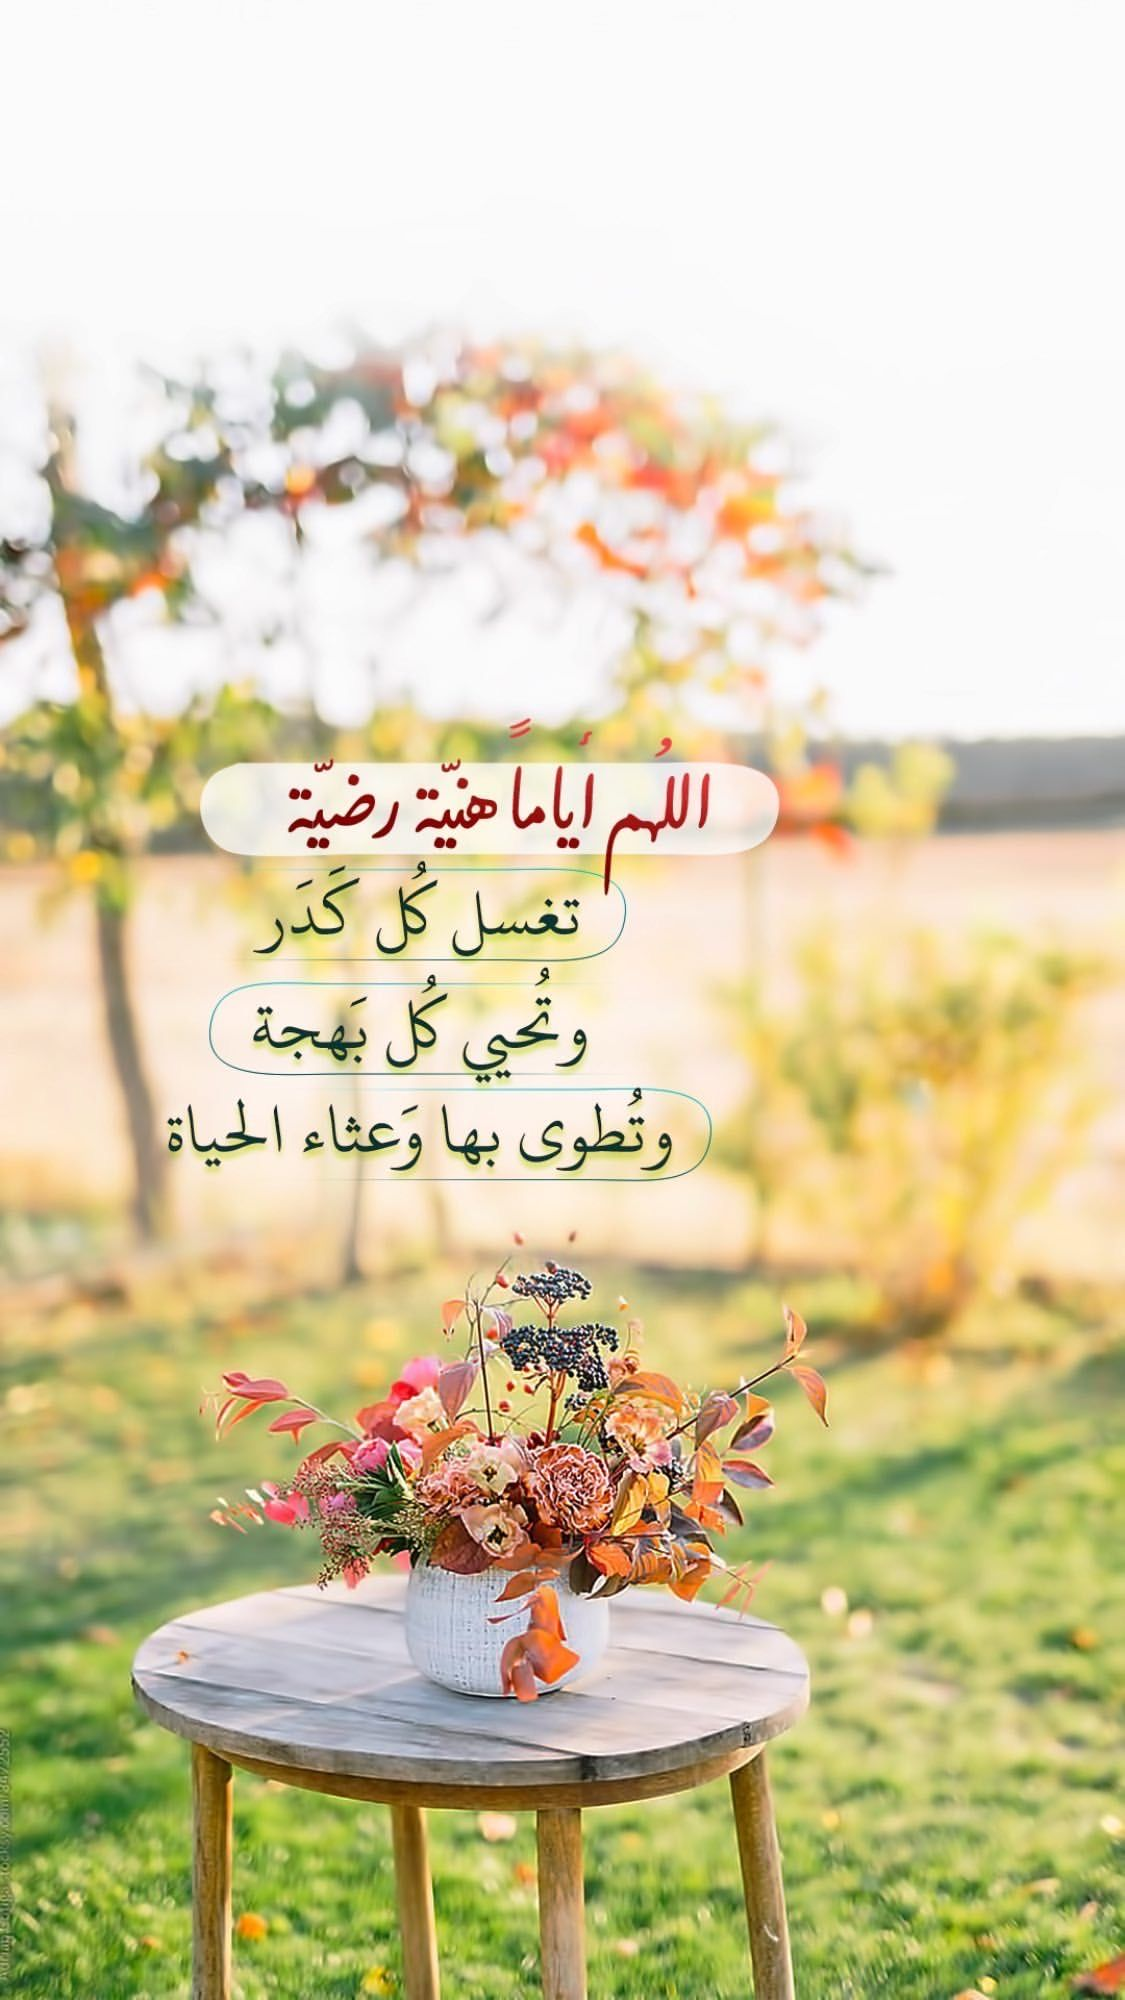 Pin By صدق المشاعر On اسلاميات Morning Greetings Quotes Islamic Pictures Morning Greeting